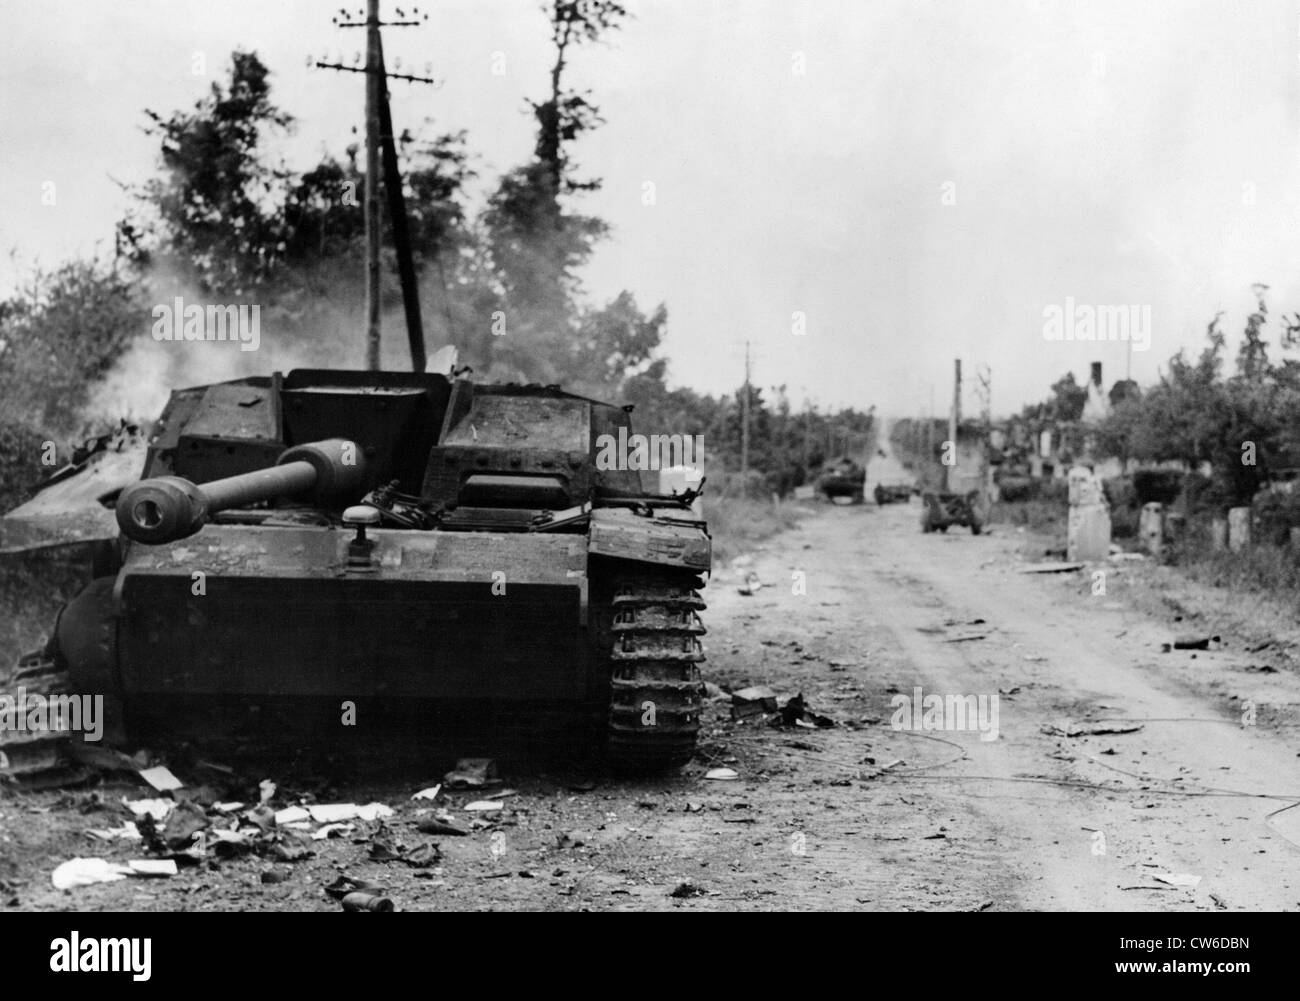 Wrecked German tanks and vehicles on the Normandy battlefront (June 1944) - Stock Image